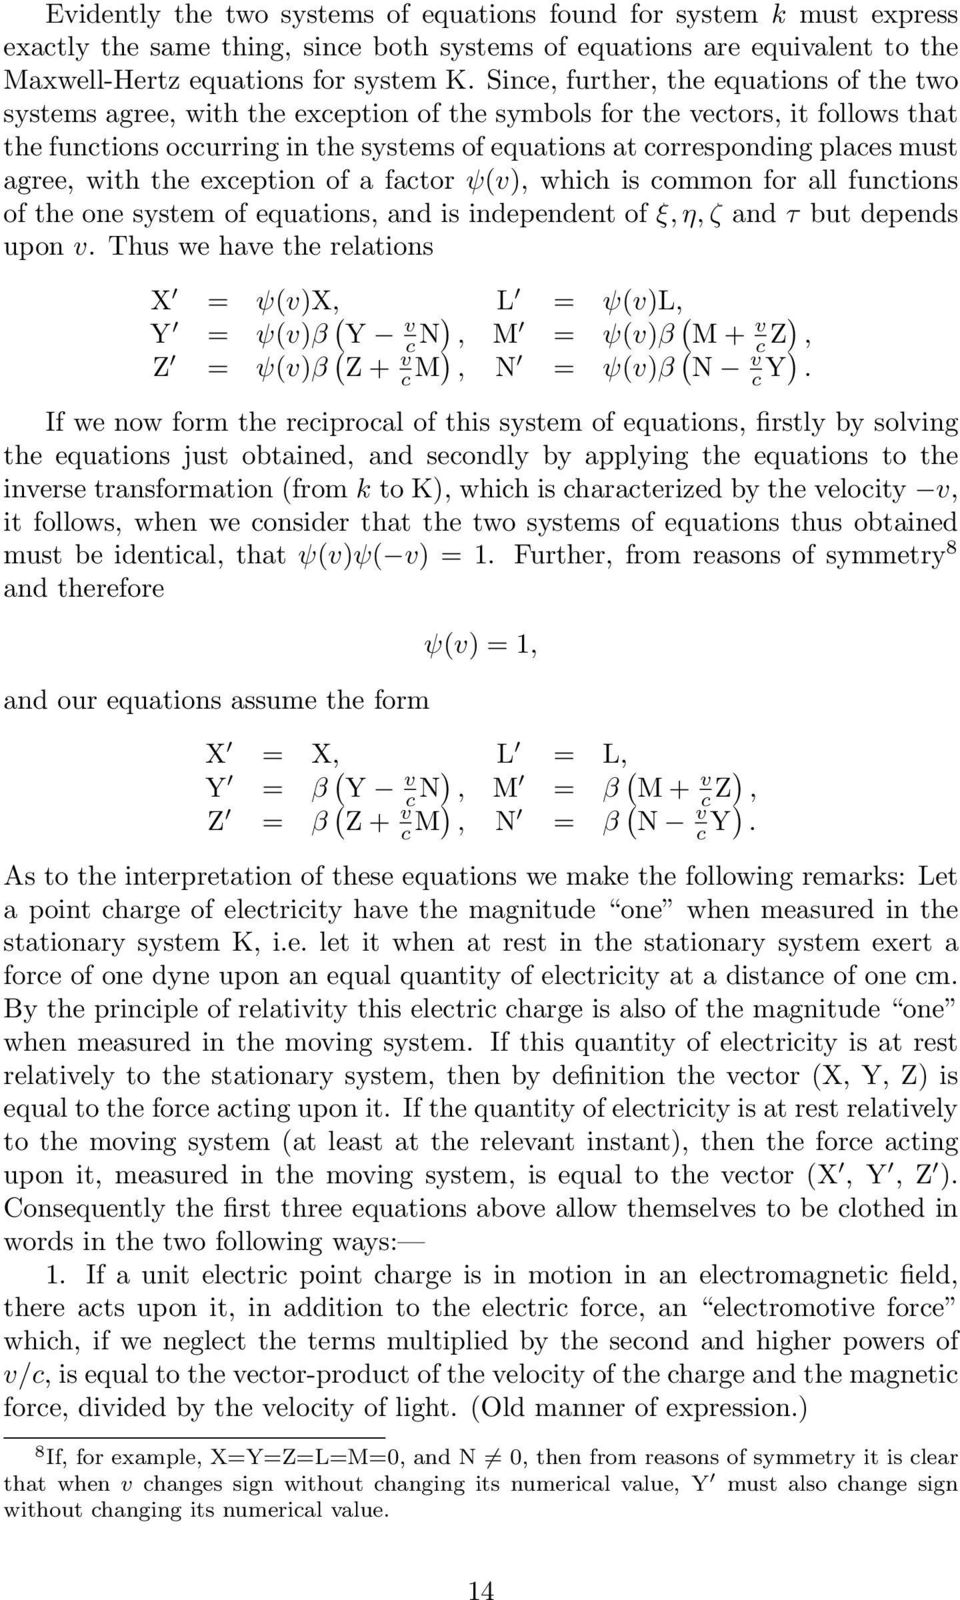 agree, with the exeption of a fator ψ(), whih is ommon for all funtions of the one system of equations, and is independent of ξ, η, ζ and τ but depends upon.